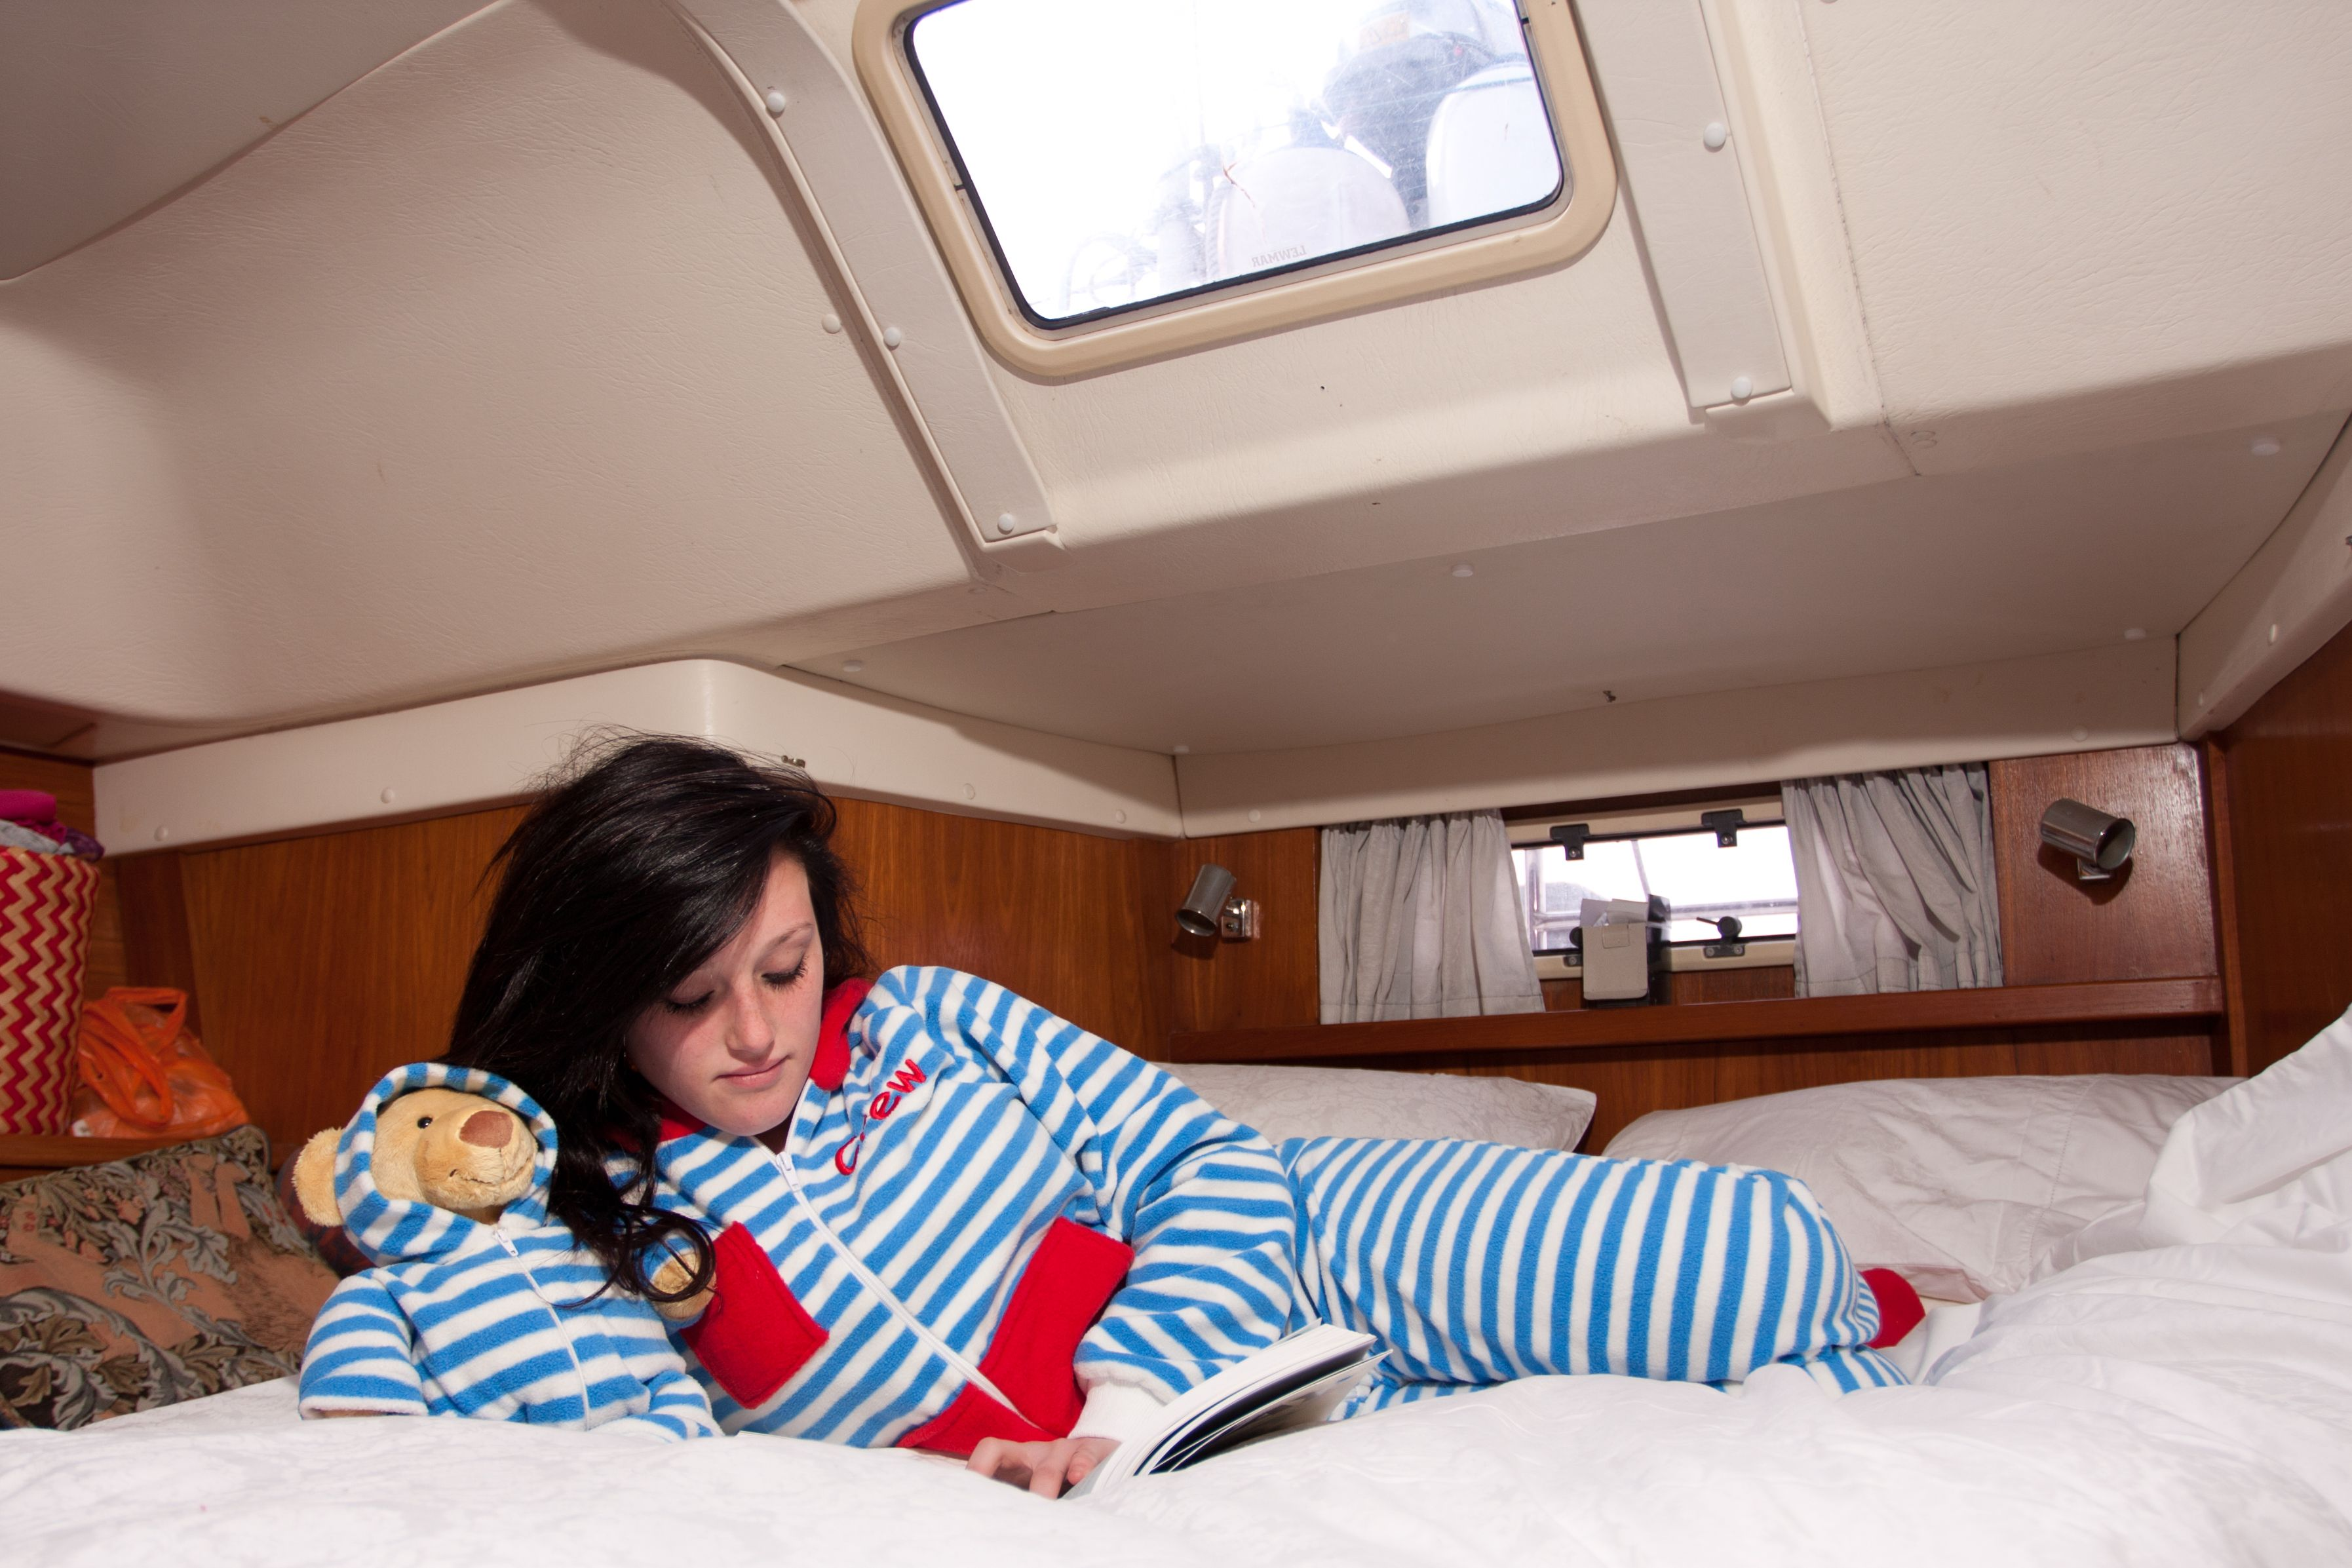 #onesie #boat #sail #blue #relax